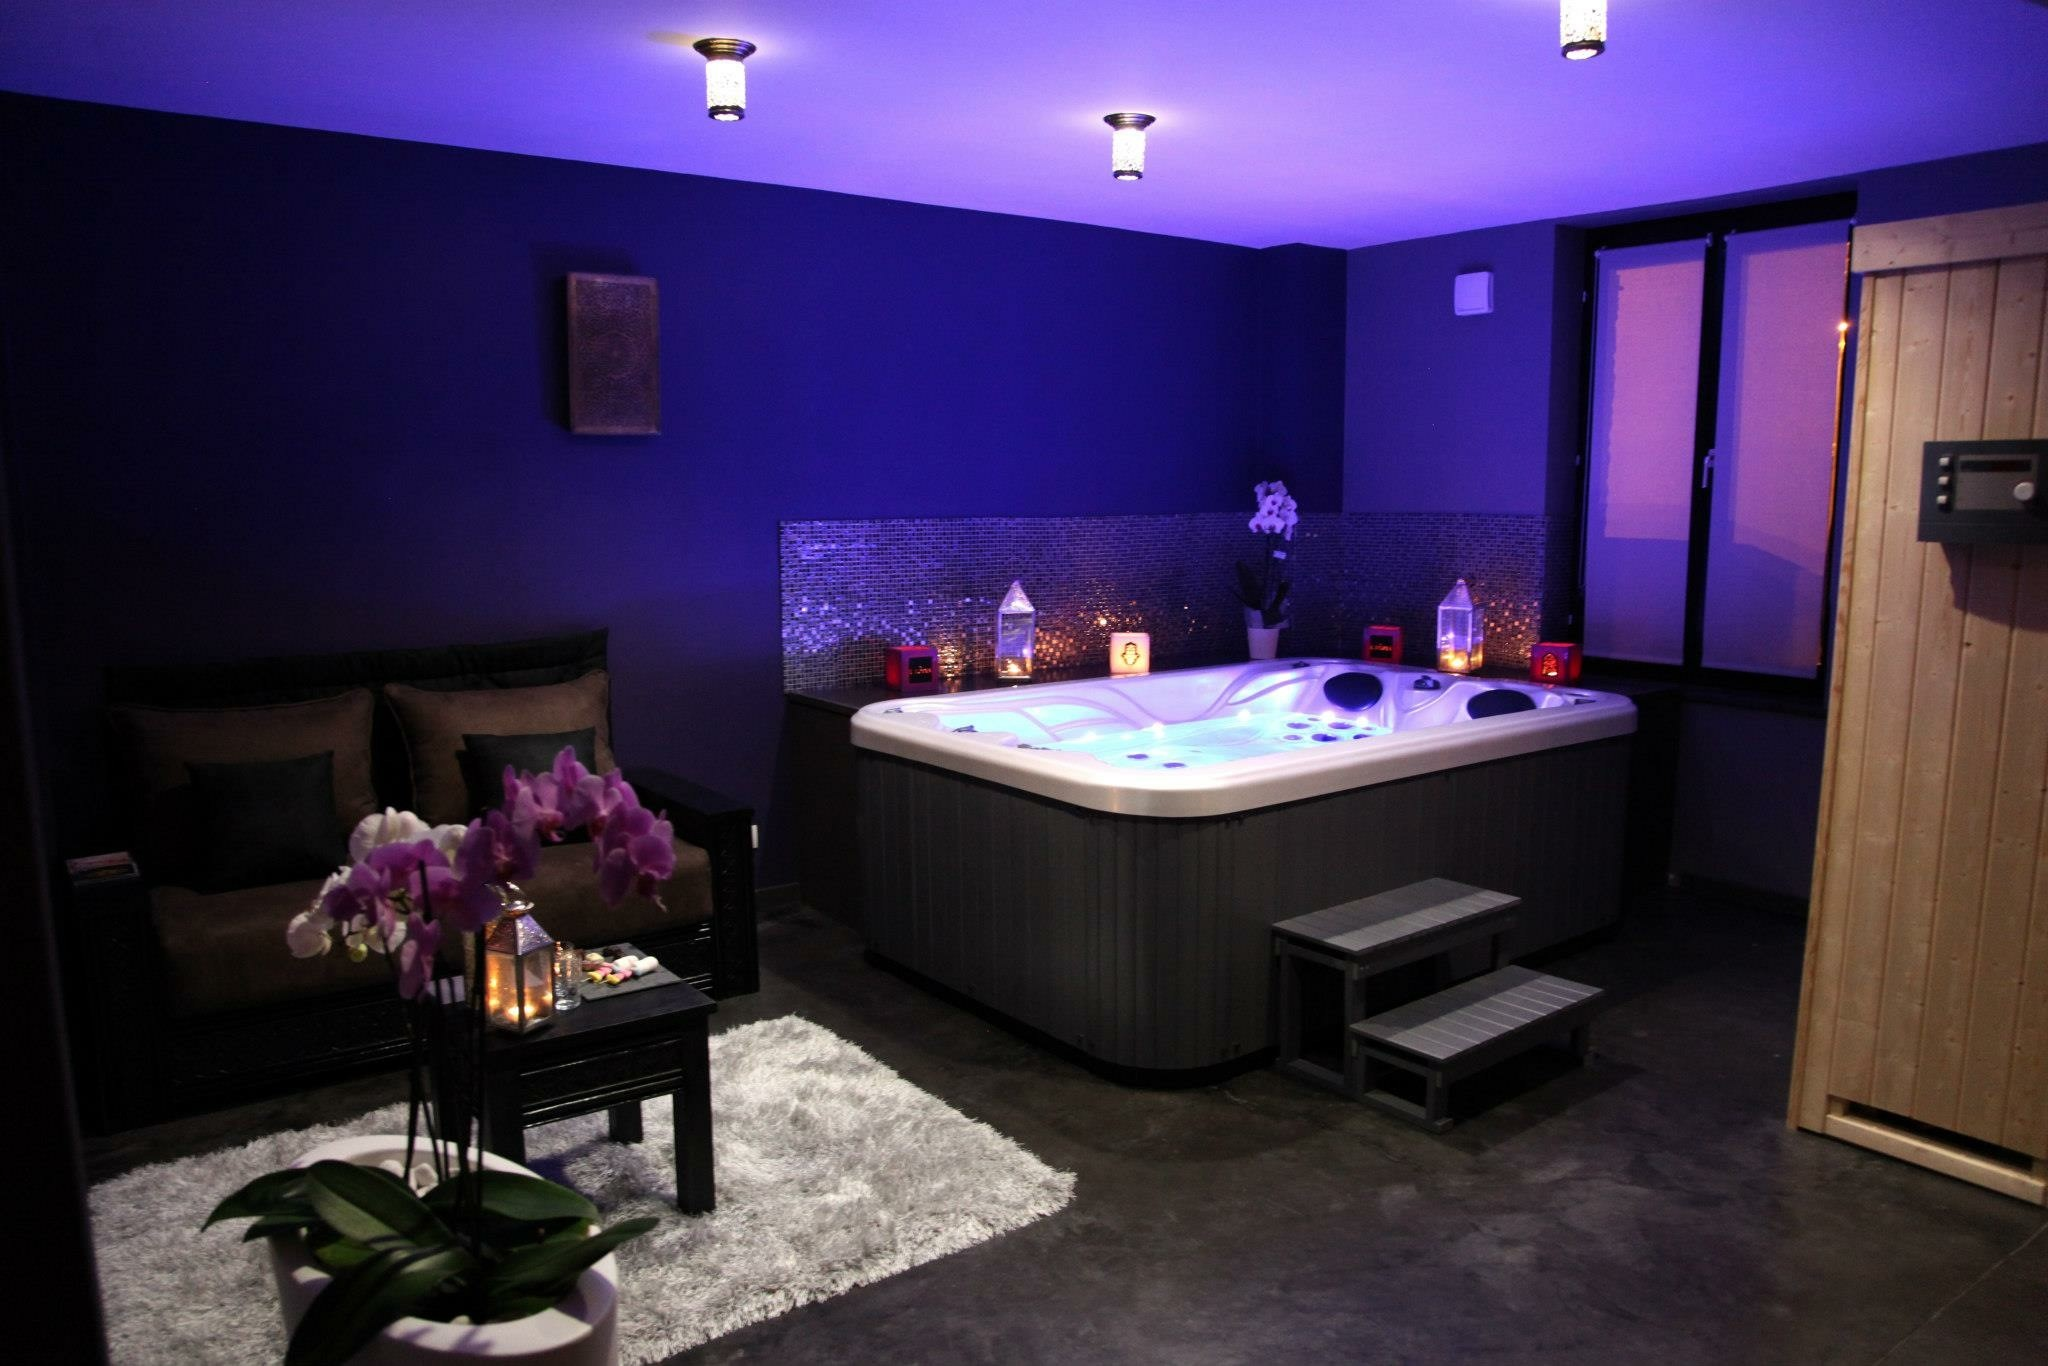 UTOPIA SPA Nuit d amour